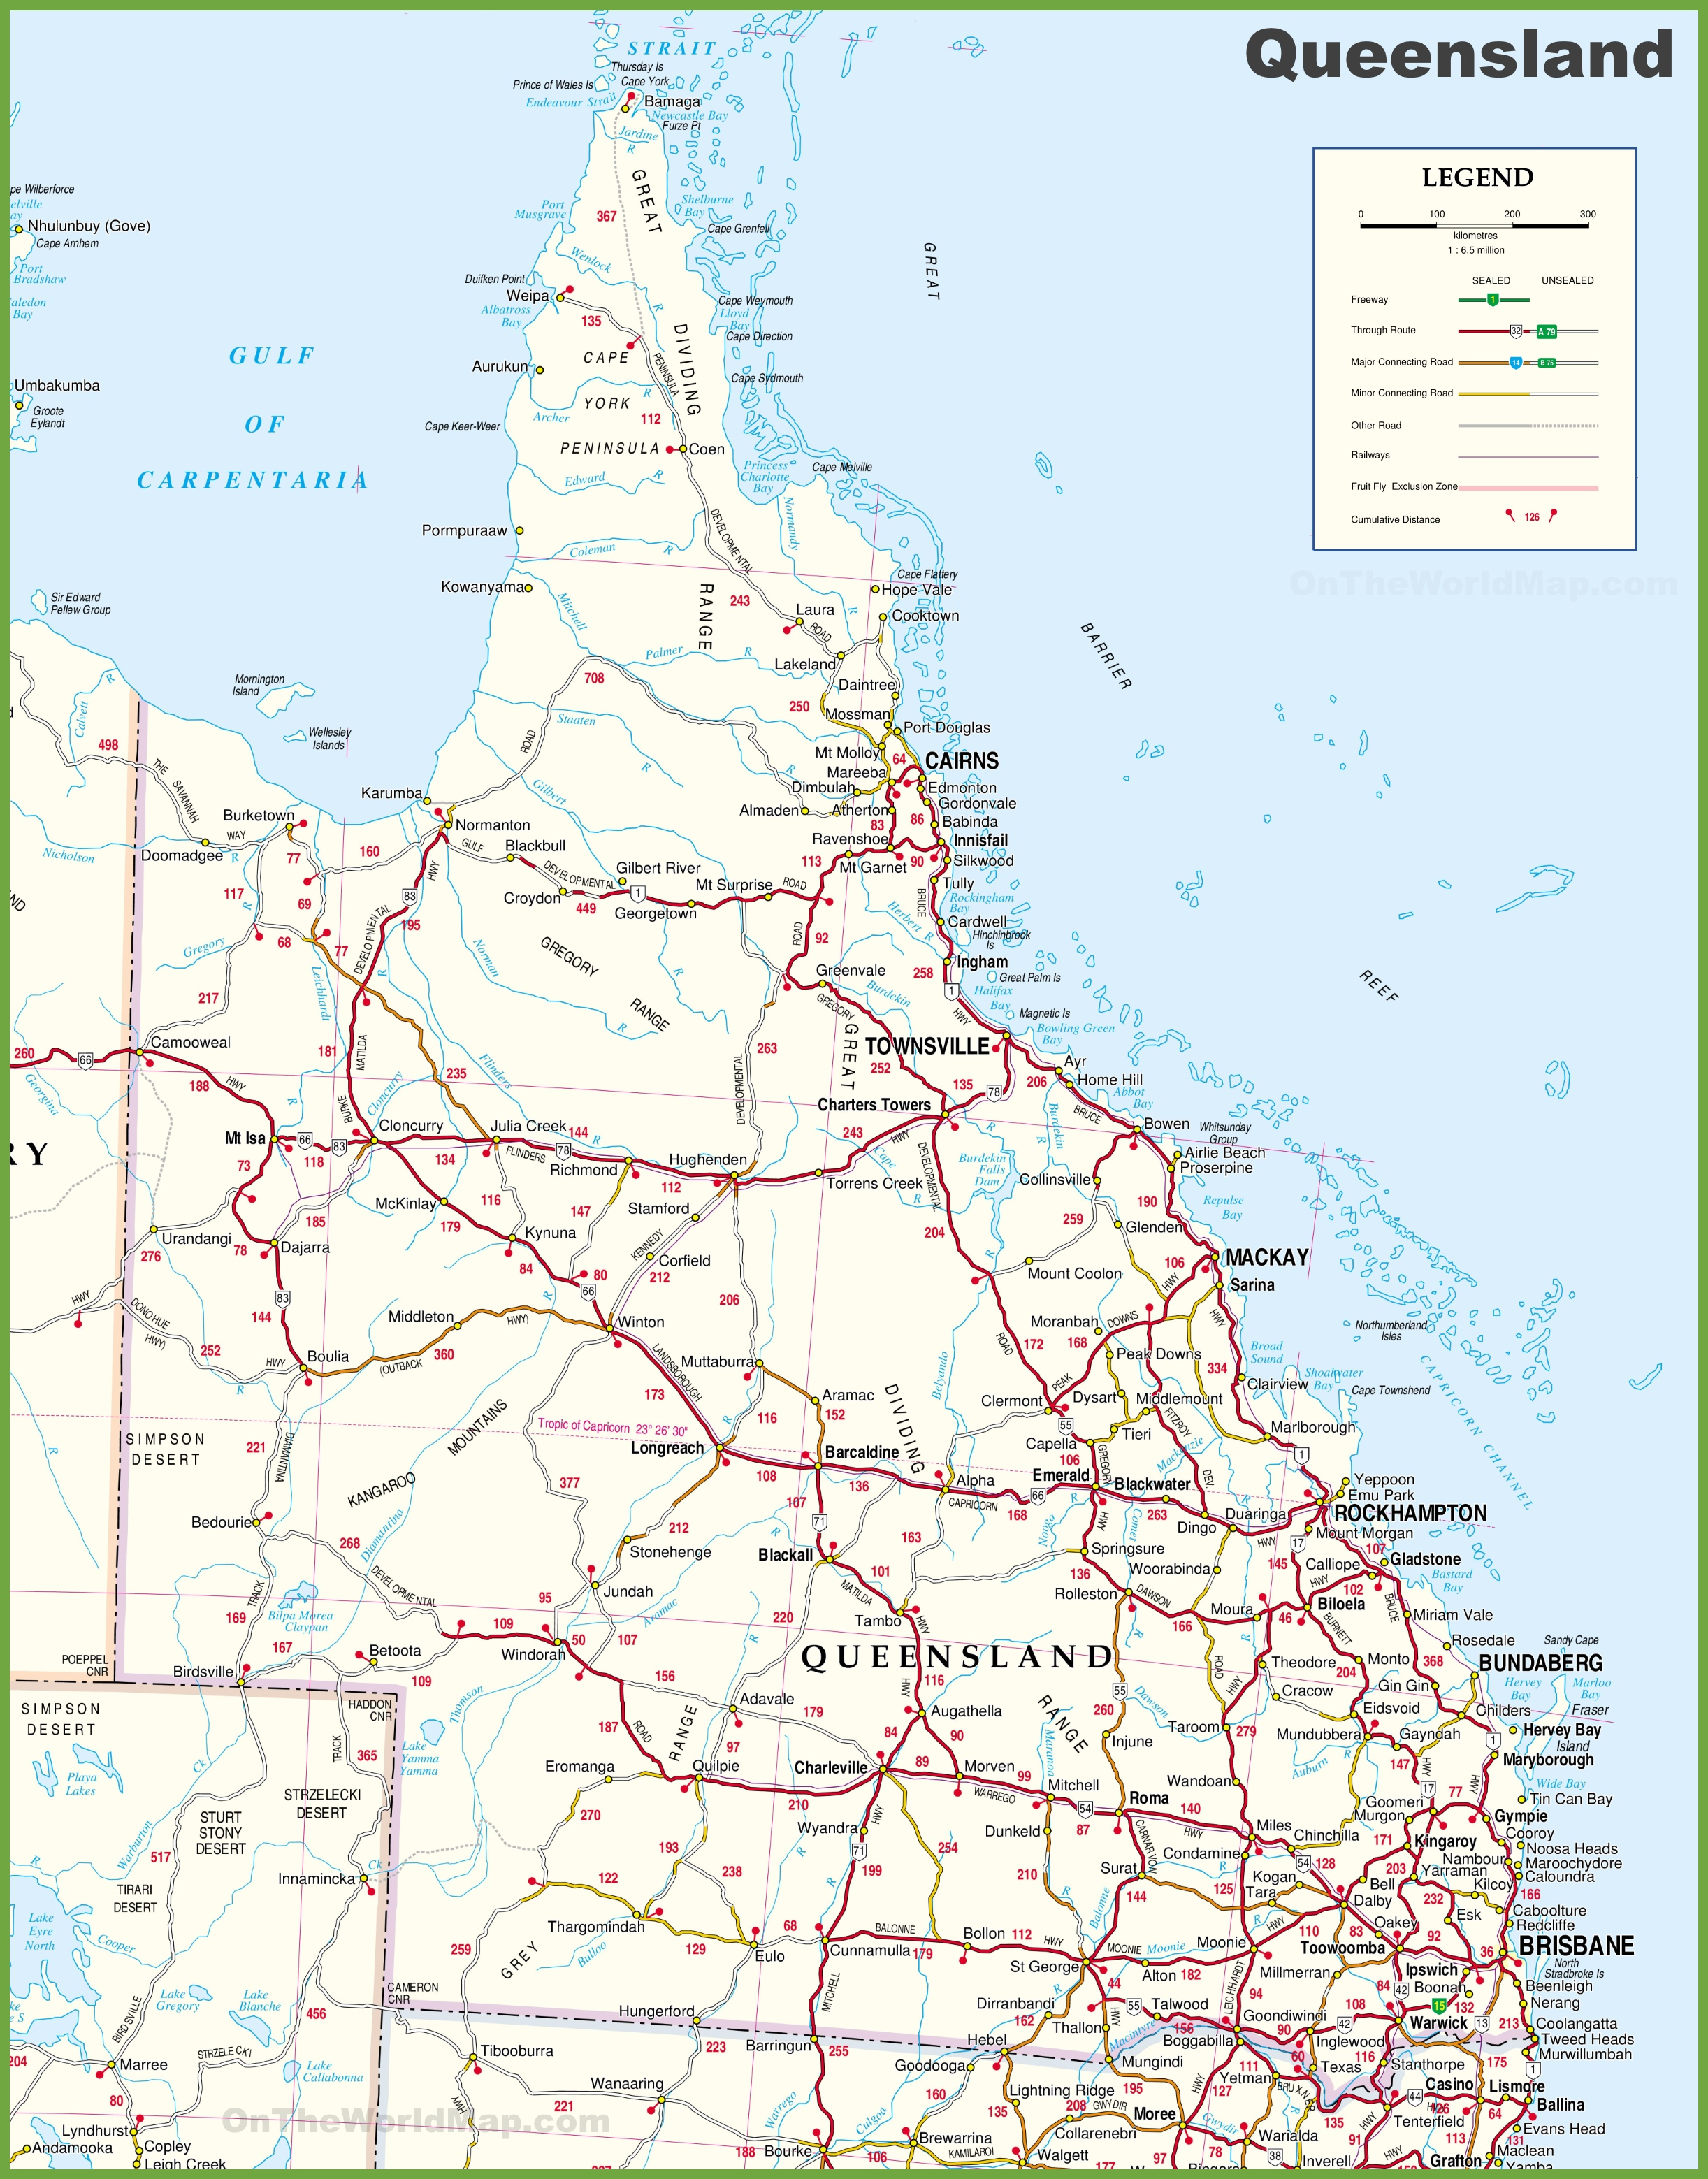 Detailed Map Of Queensland Australia.Large Detailed Map Of Queensland With Cities And Towns